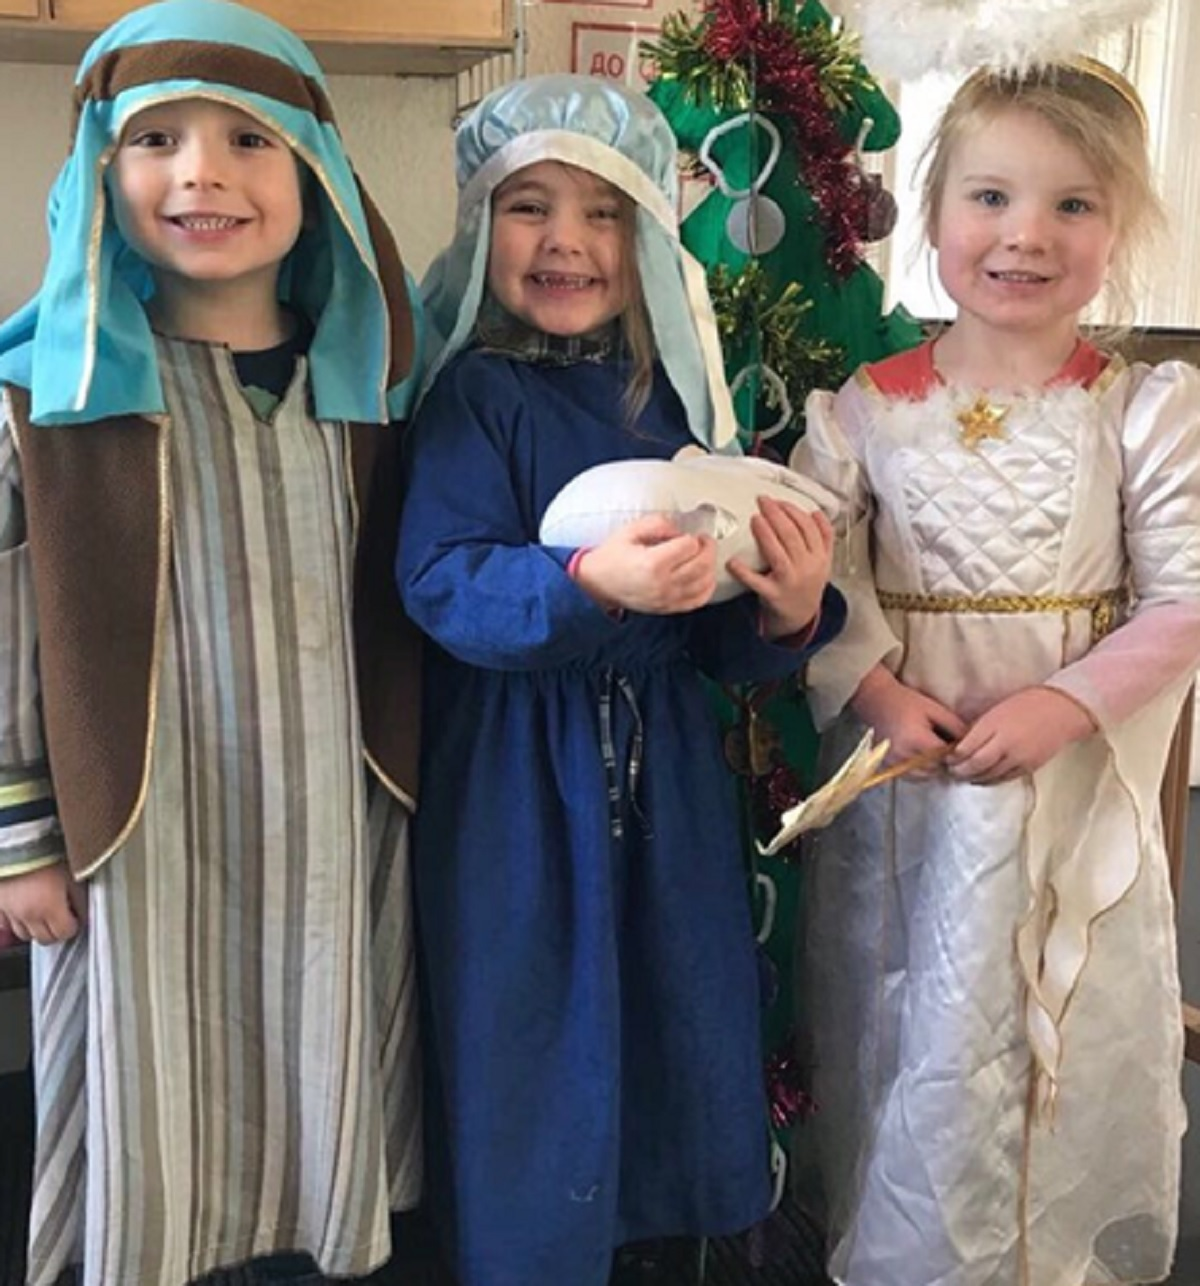 Joseph was played by Charlie Warrington, Mary by Olivia Crook, and an Angel by Alex Turnbull, all aged 3